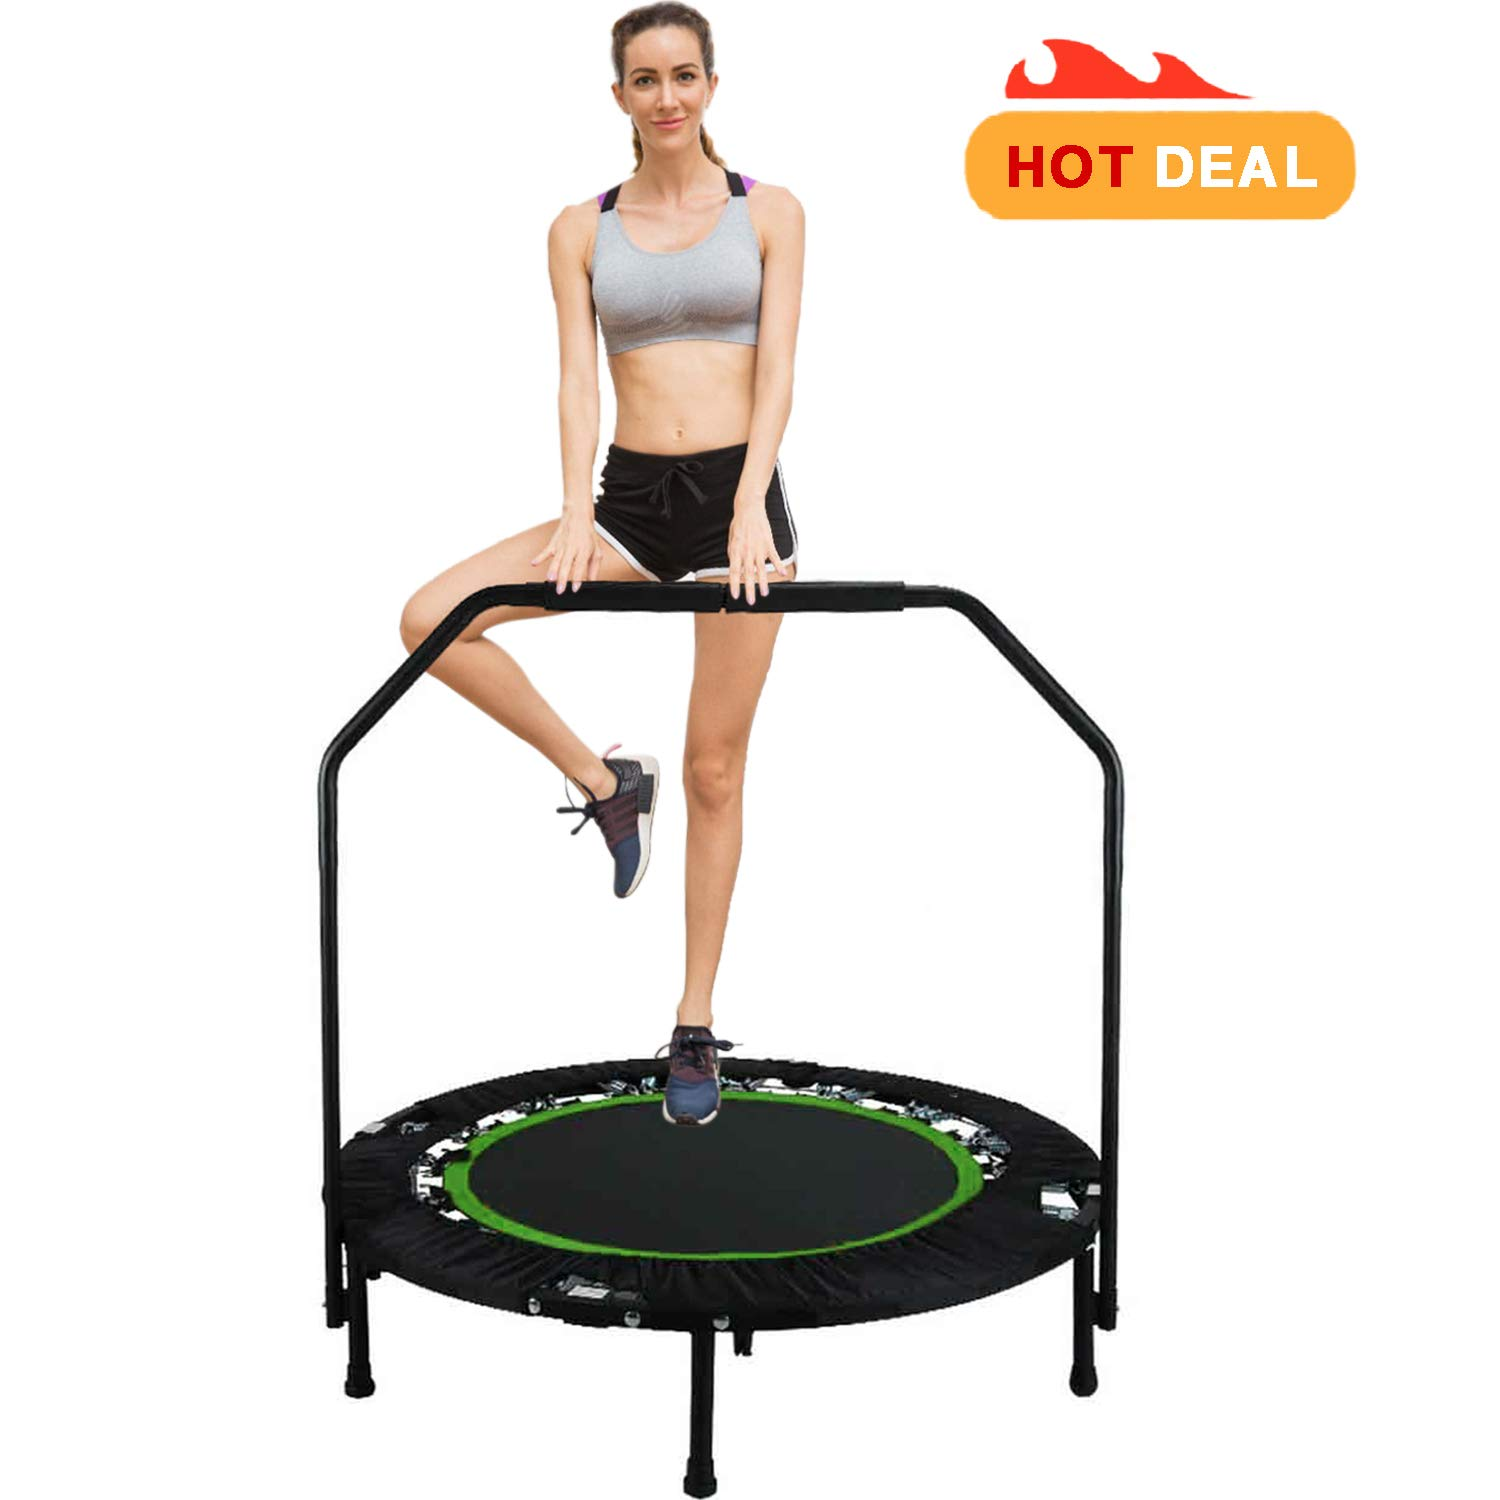 40'' Fitness Exercise Trampoline Foldable with Adjustable Handrail Rebounder Trampoline Indoor Mini Trampoline for Adults or Kids Max. Load 300 lbs Stretch Jump Mat (Green2)